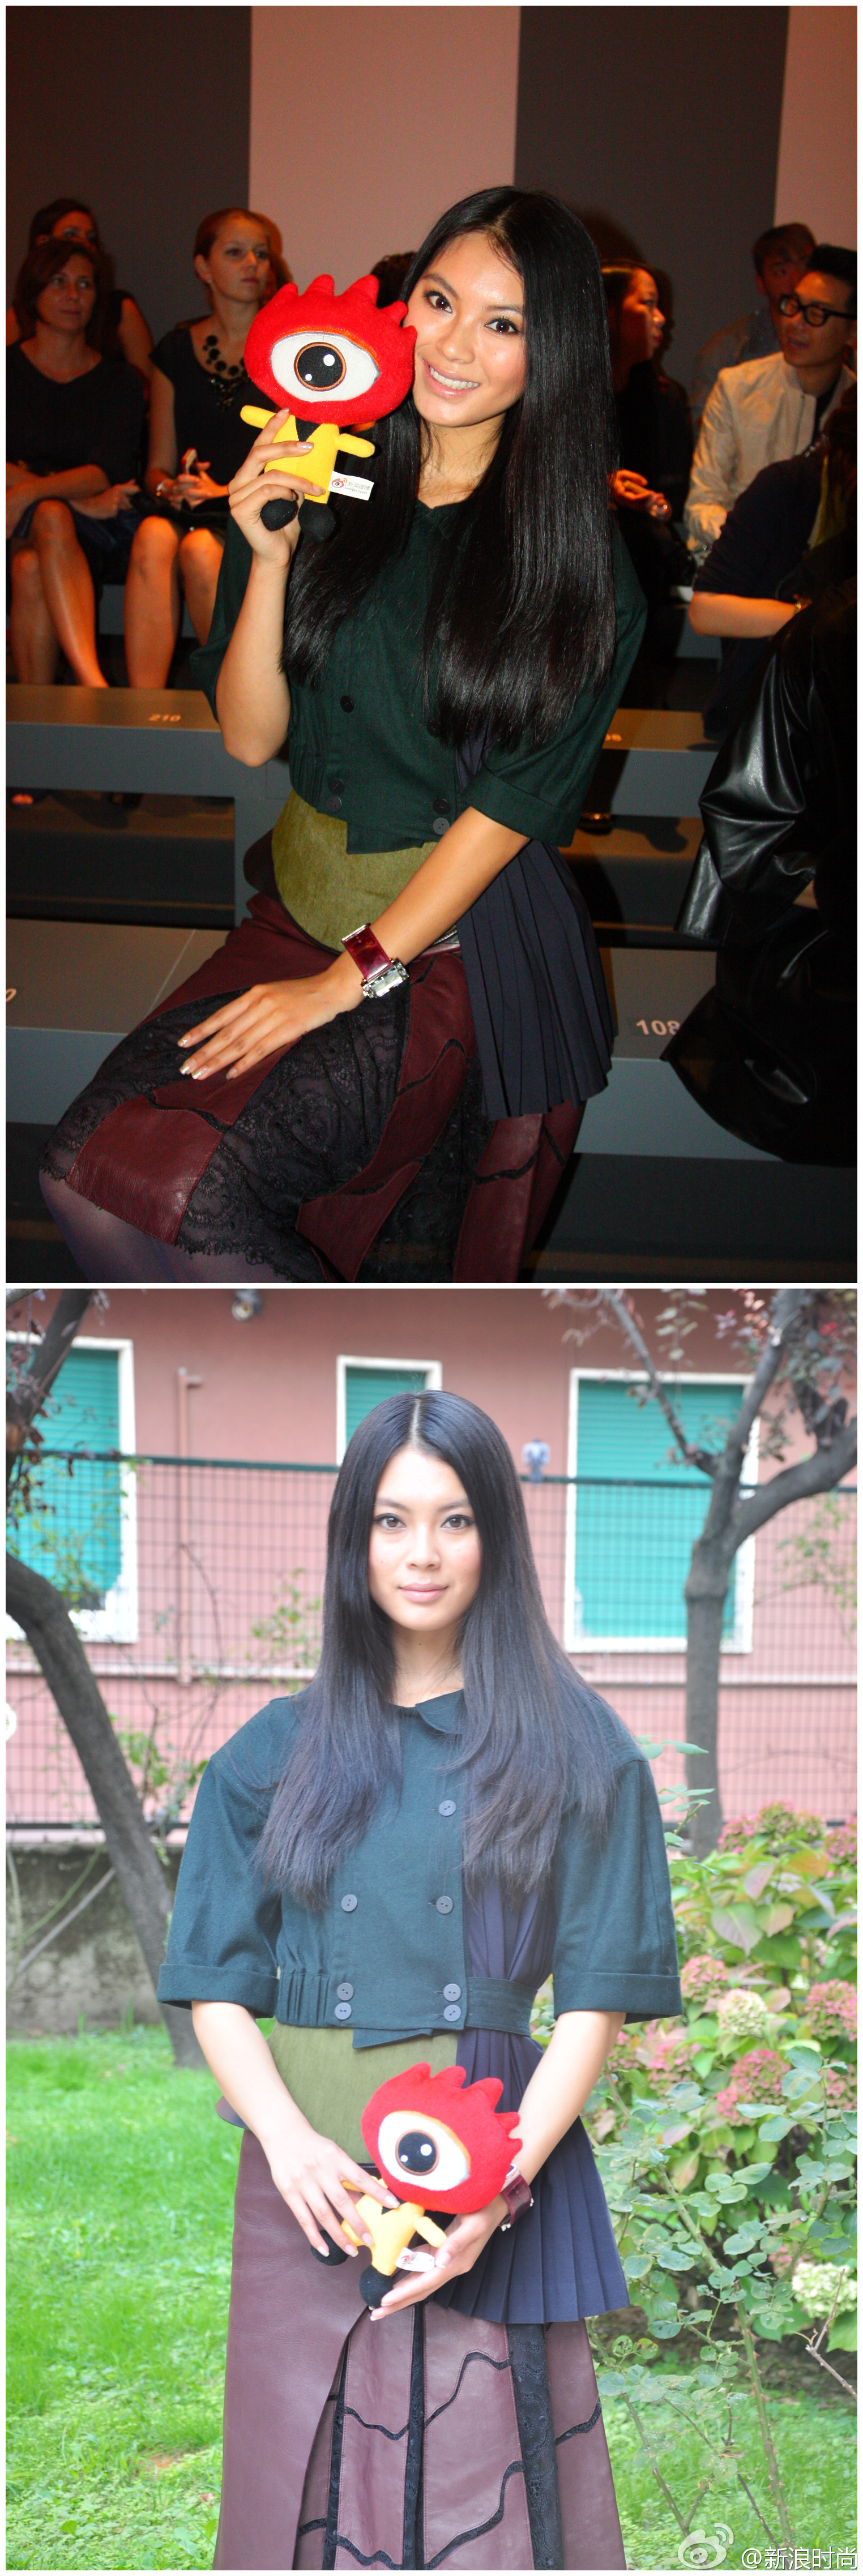 Official Thread Miss World 2012- Yu Wenxia- People's Republic of China - Page 4 693605c5jw1dx6pk0sdgej